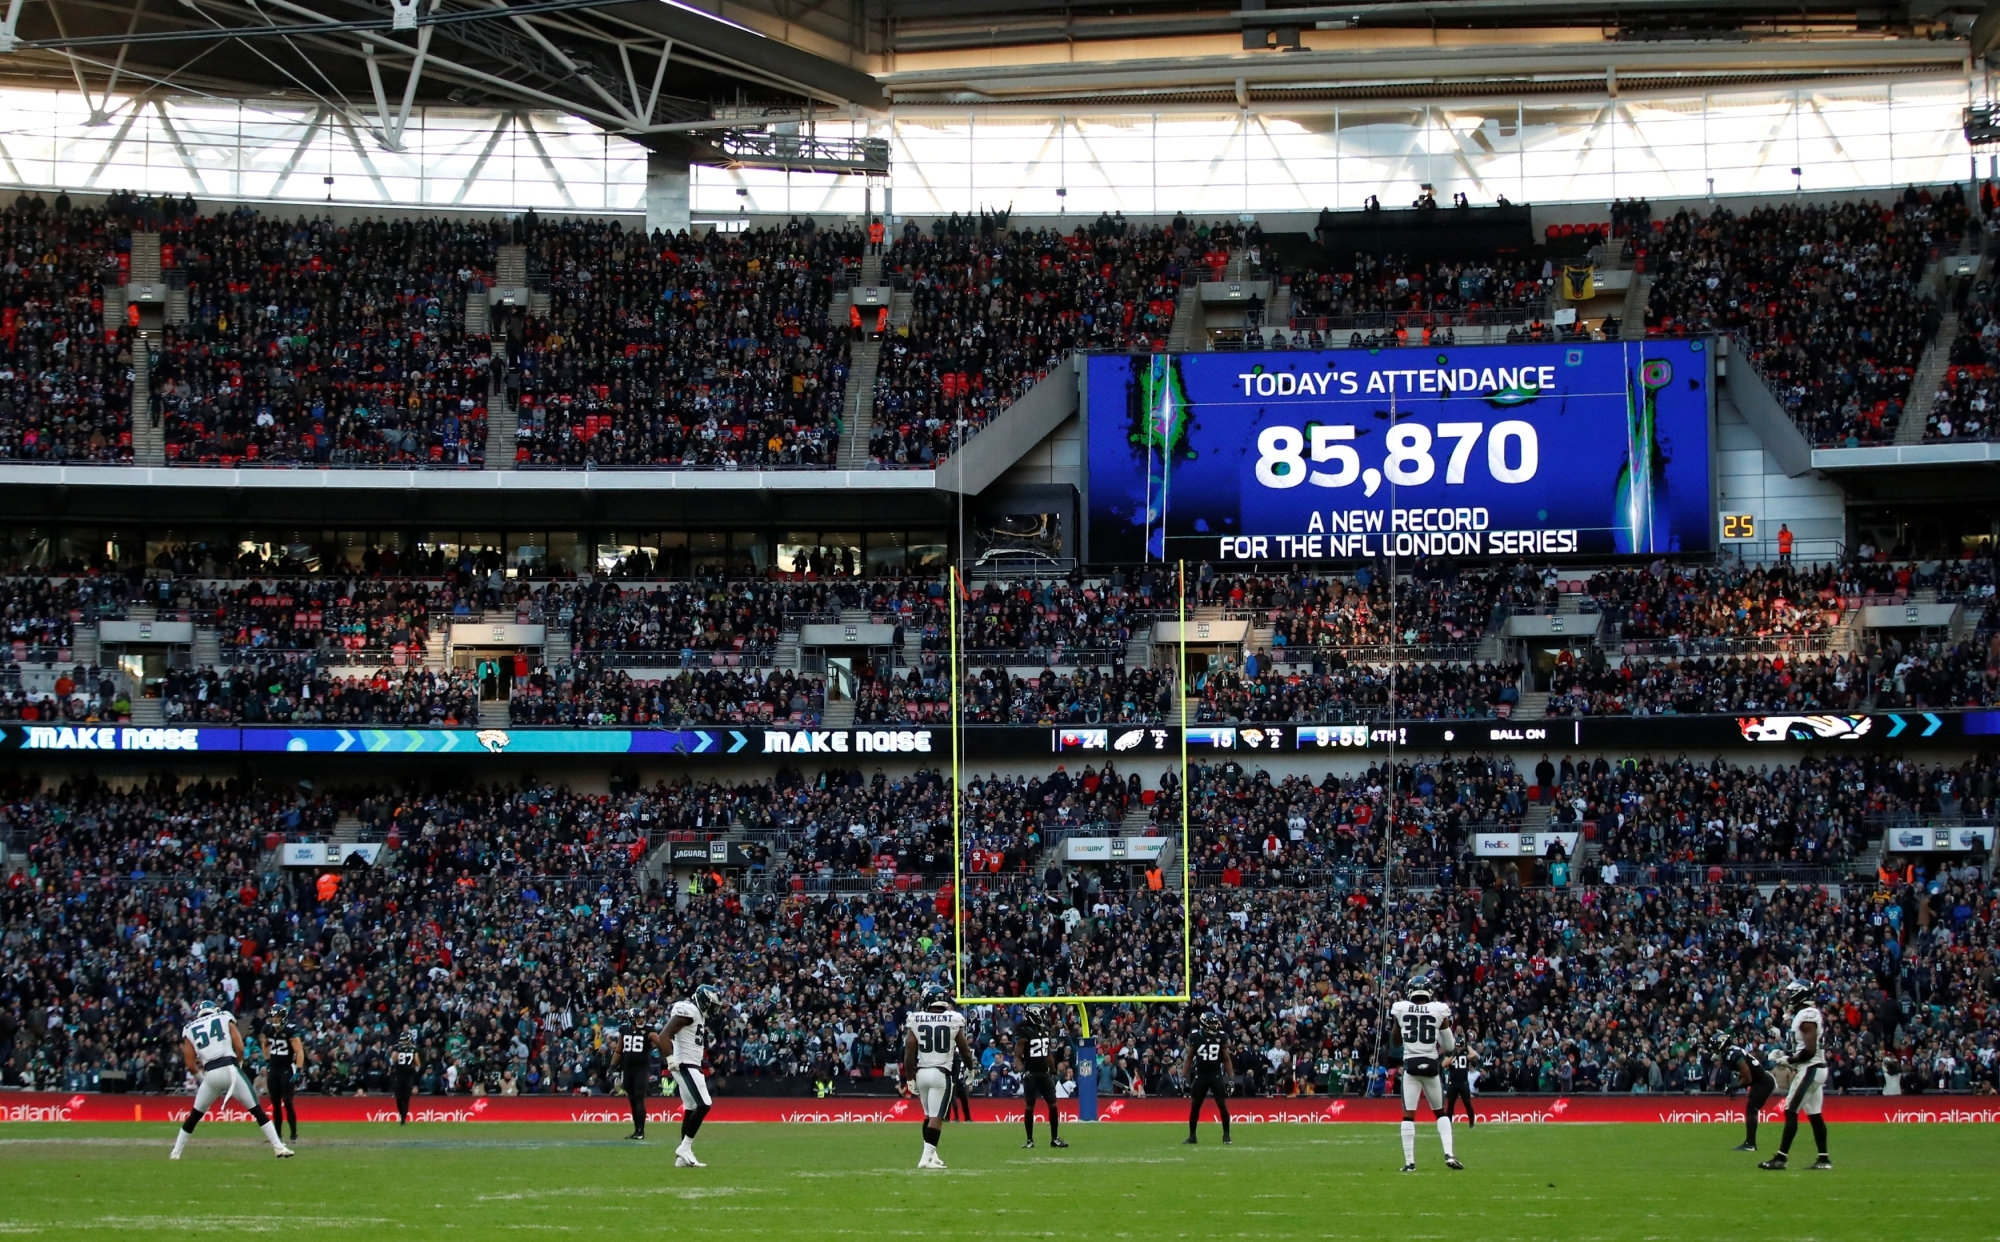 Nfl To Stage Four London Games In 2019 As U.k. Popularity in Super Bowl Attendance 2019